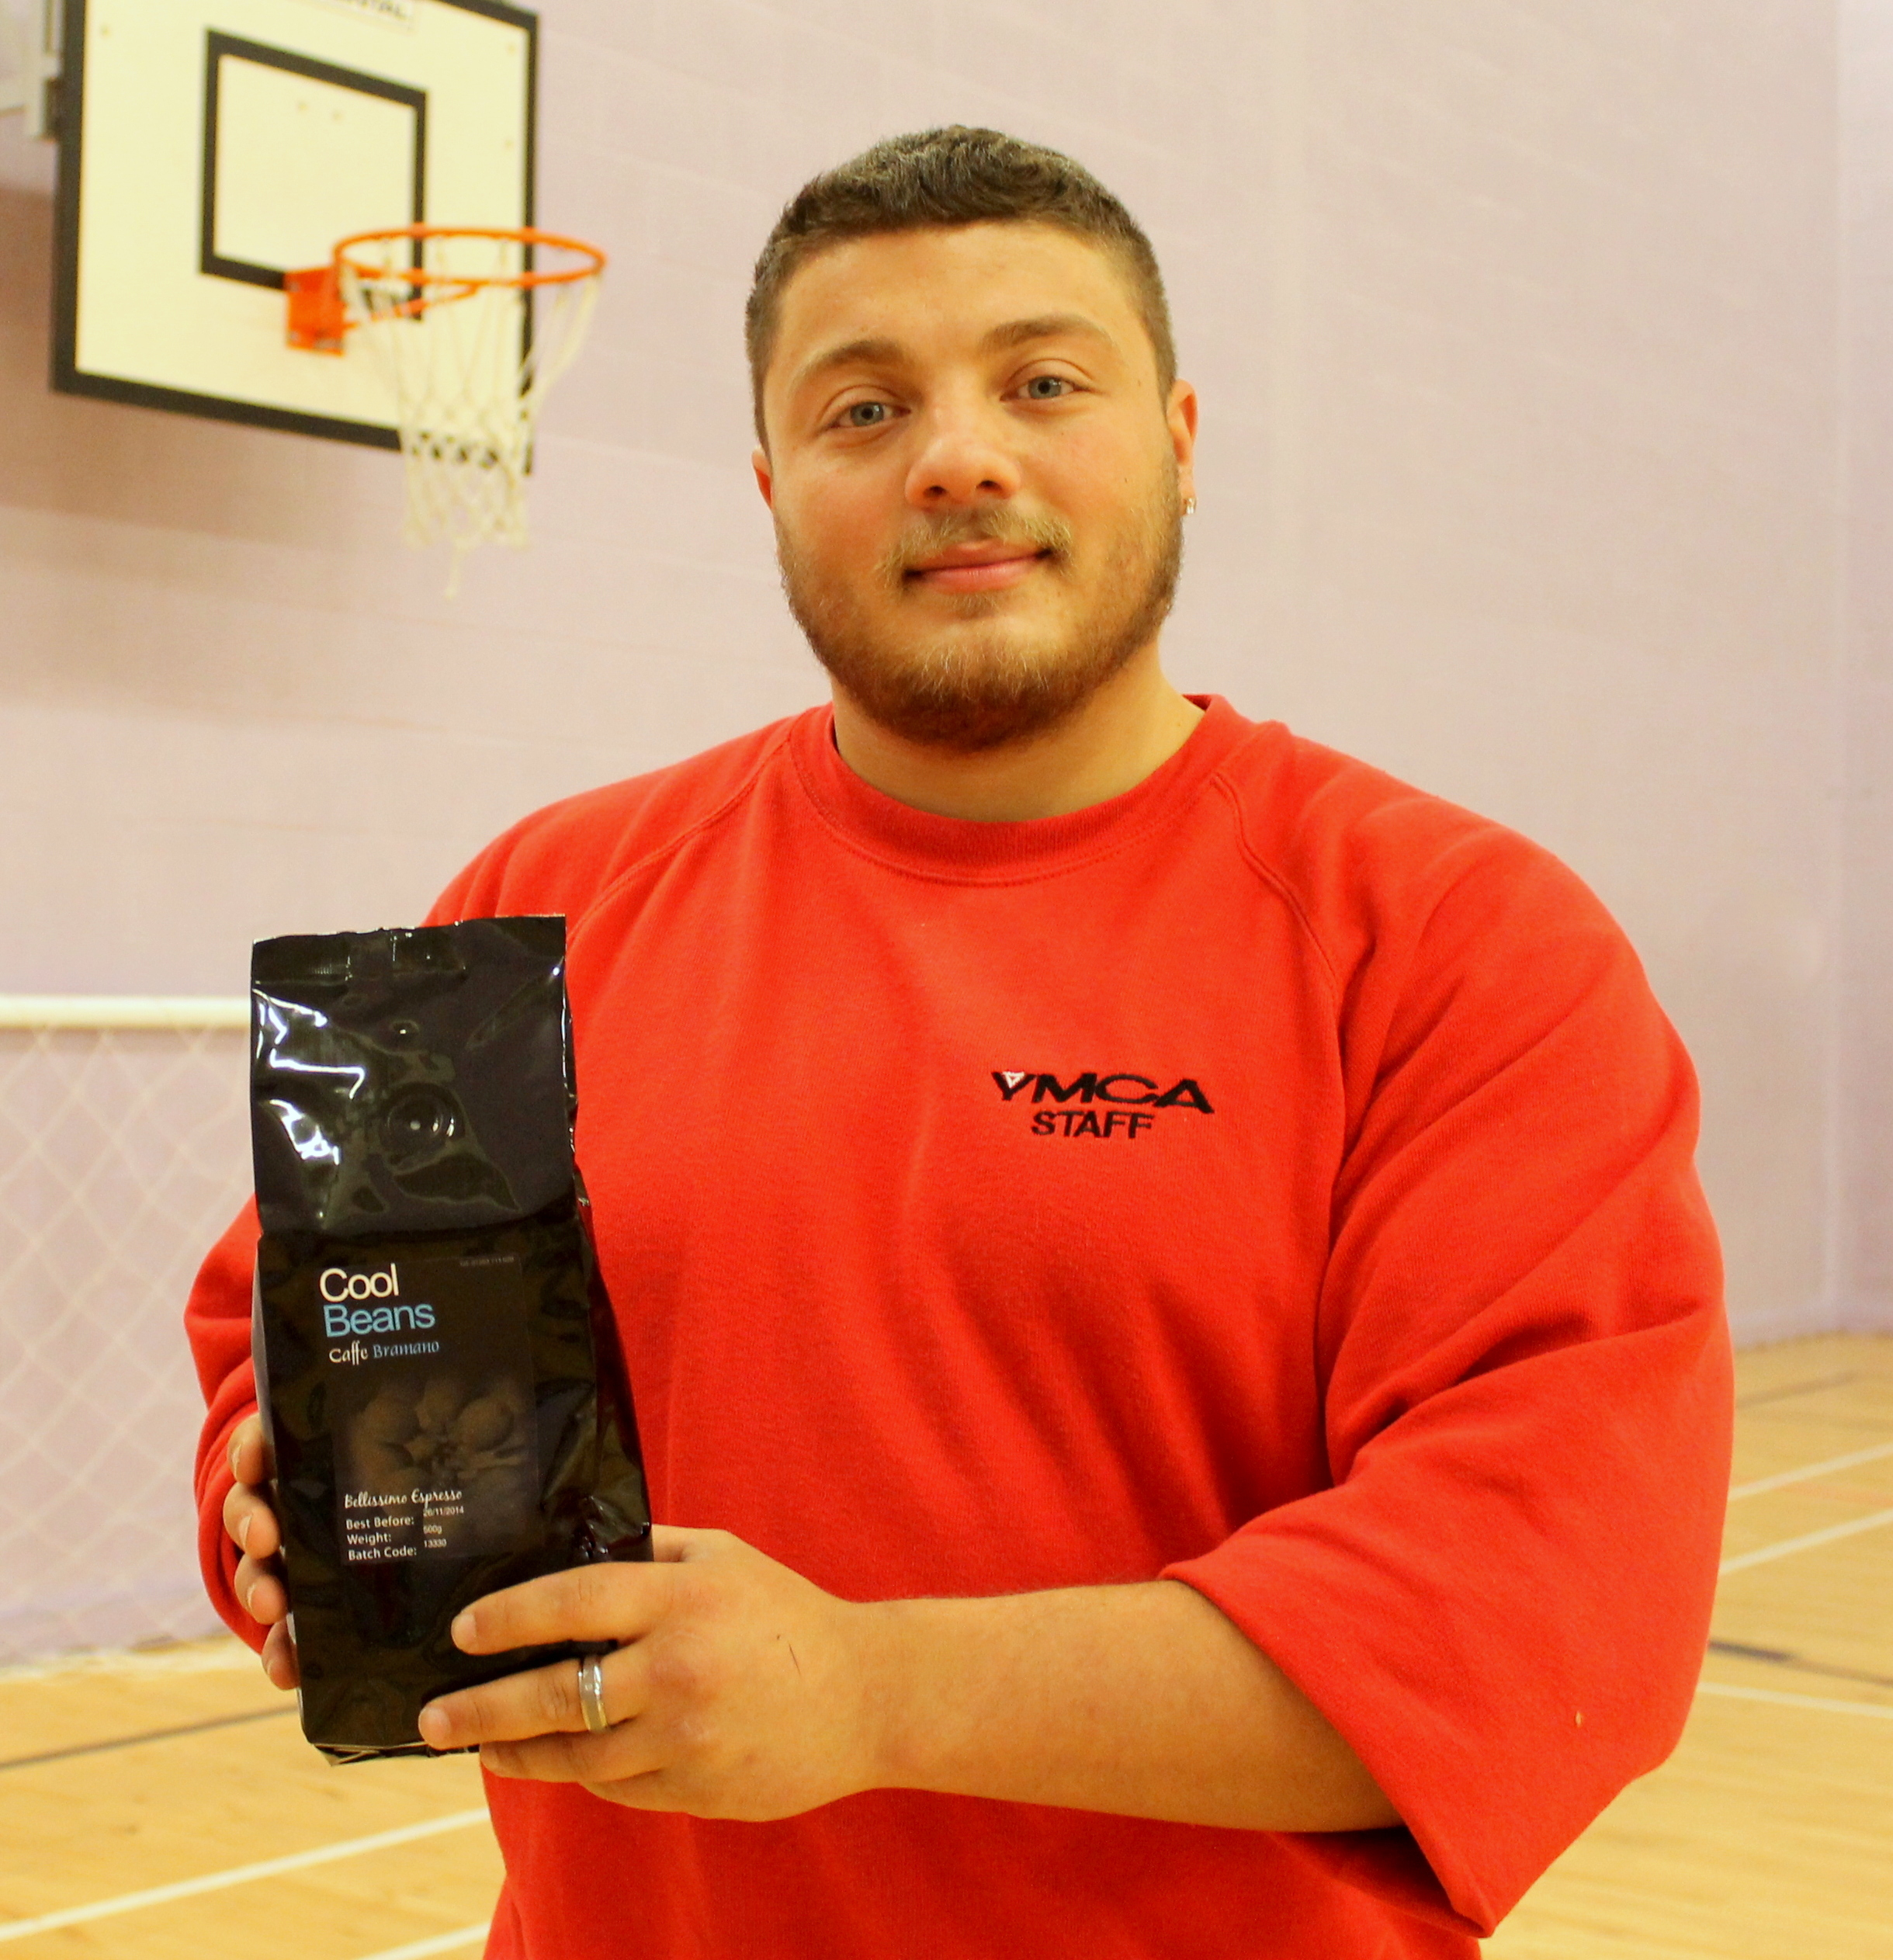 Yiannis Veranikis The Beast Cool Beans Coffee